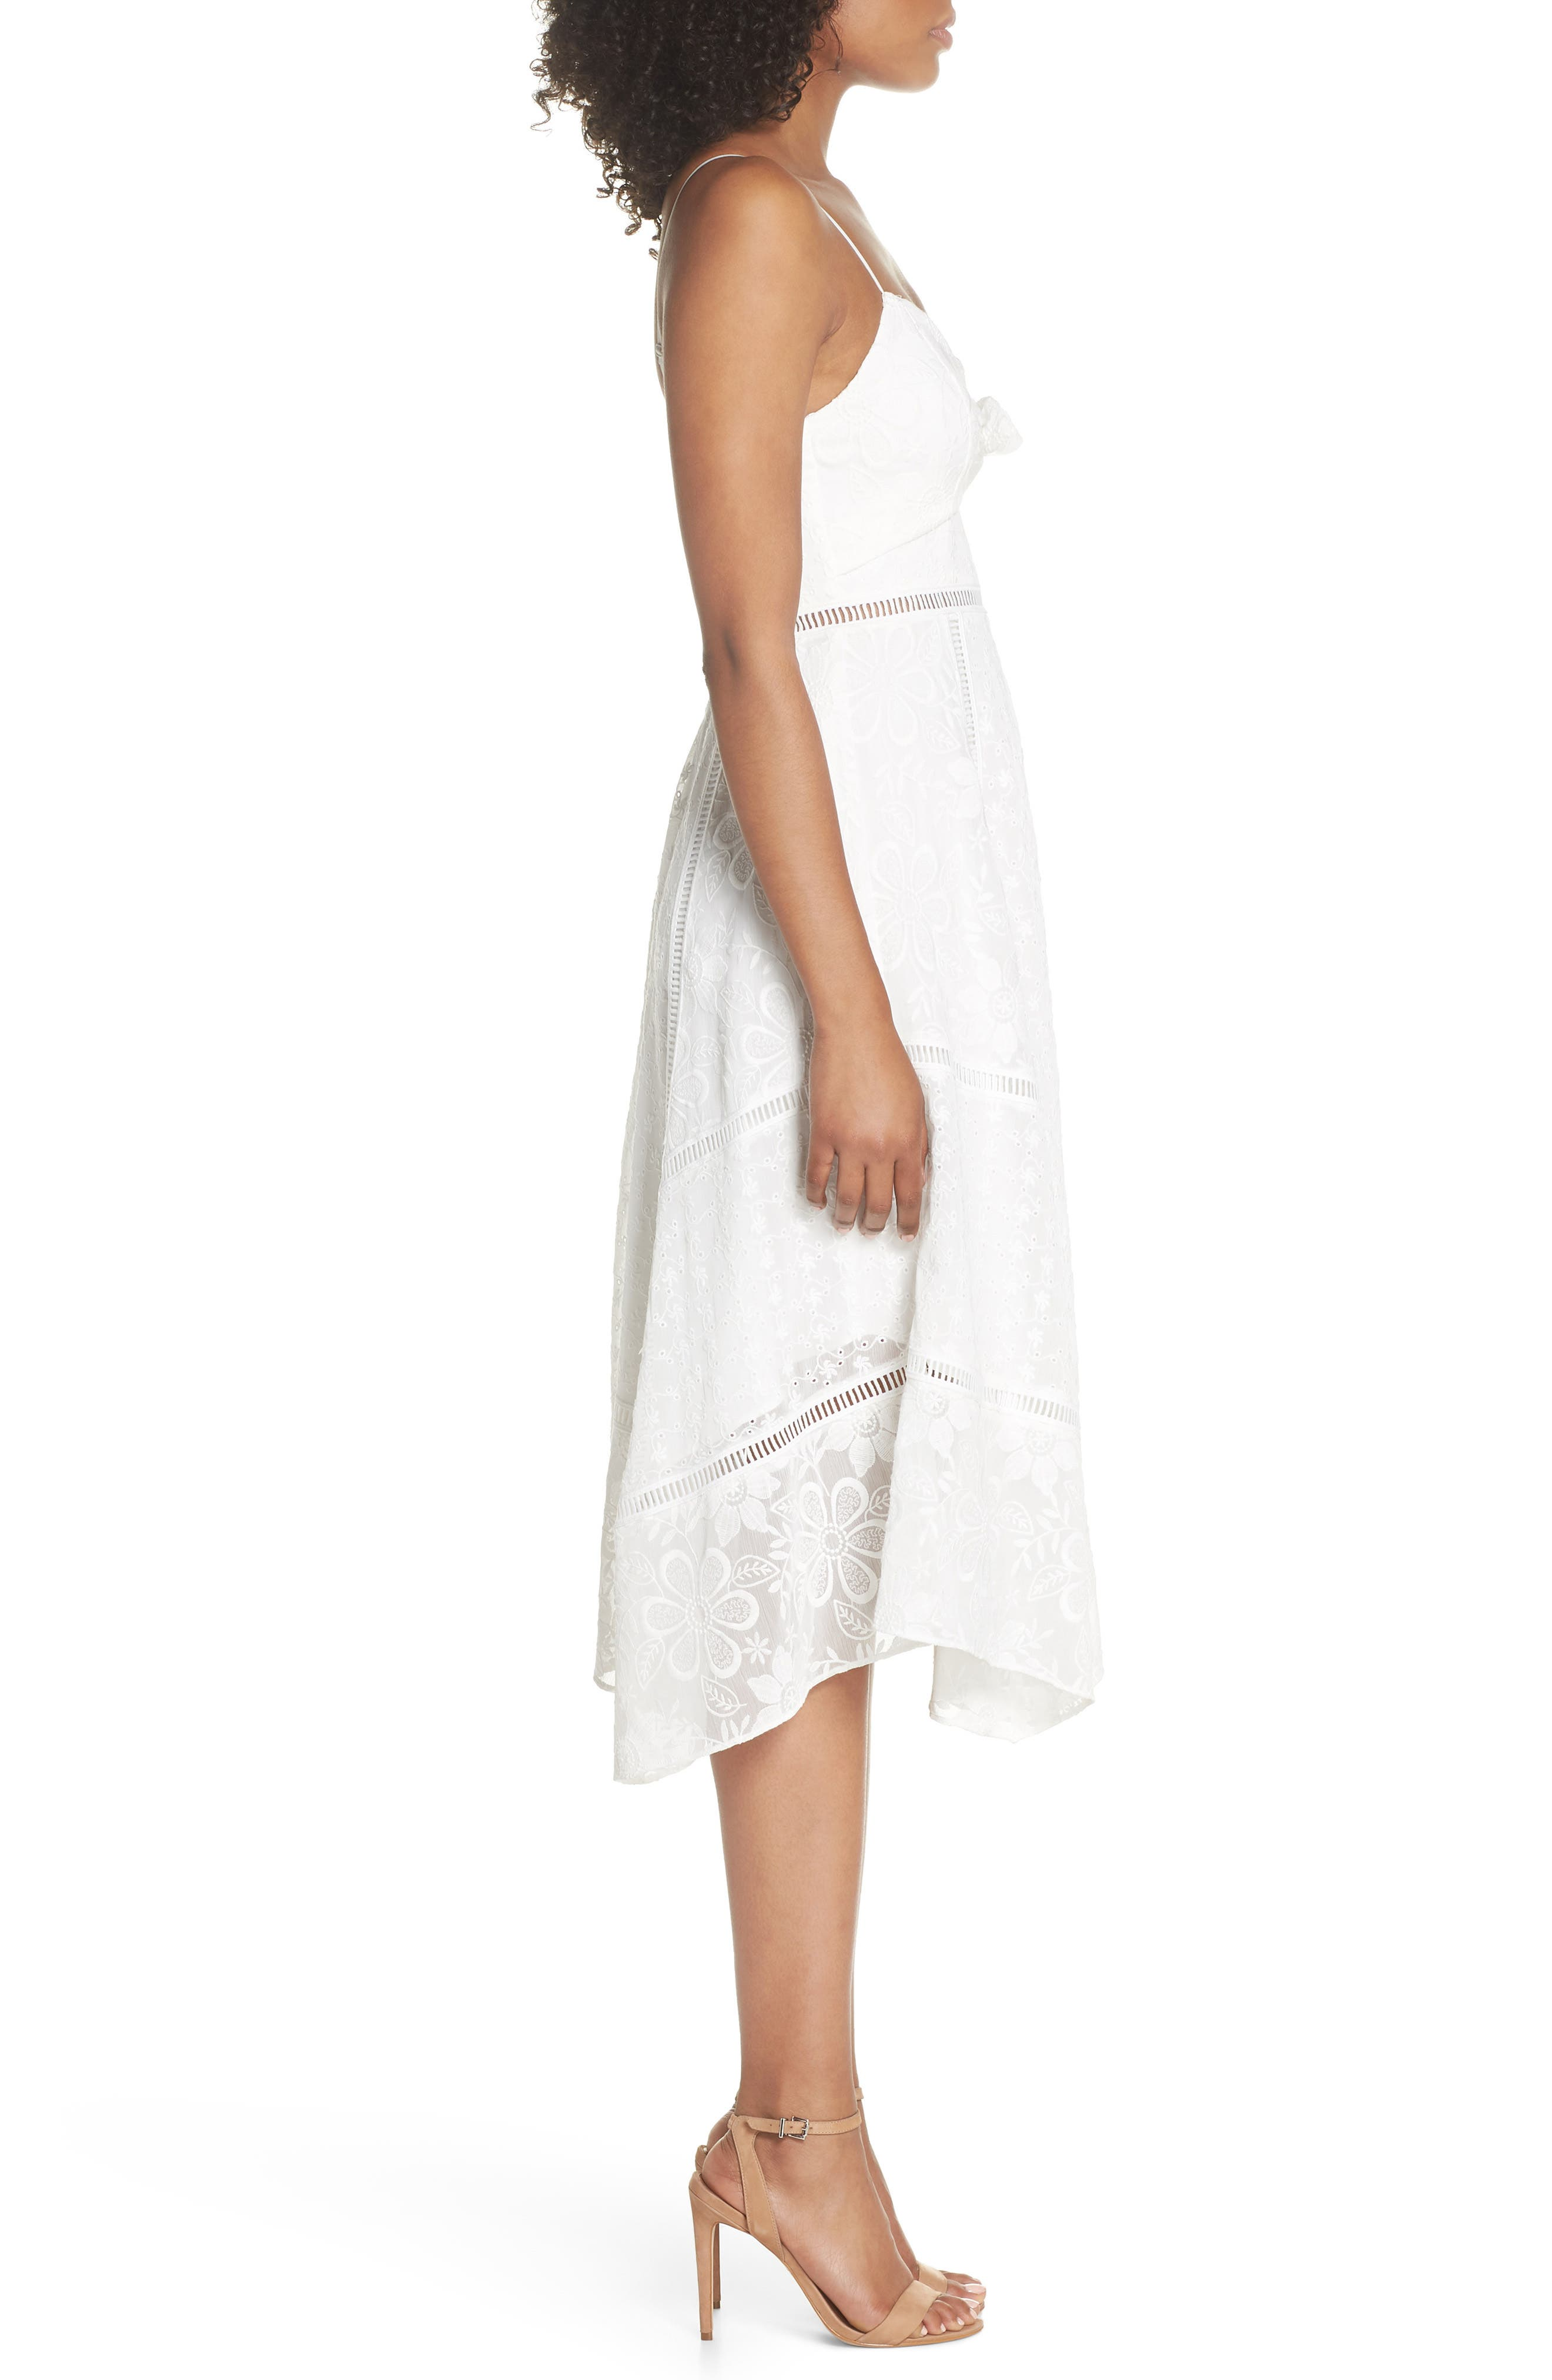 EVER NEW,                             Broderie Anglaise Knot Detail Dress,                             Alternate thumbnail 3, color,                             100